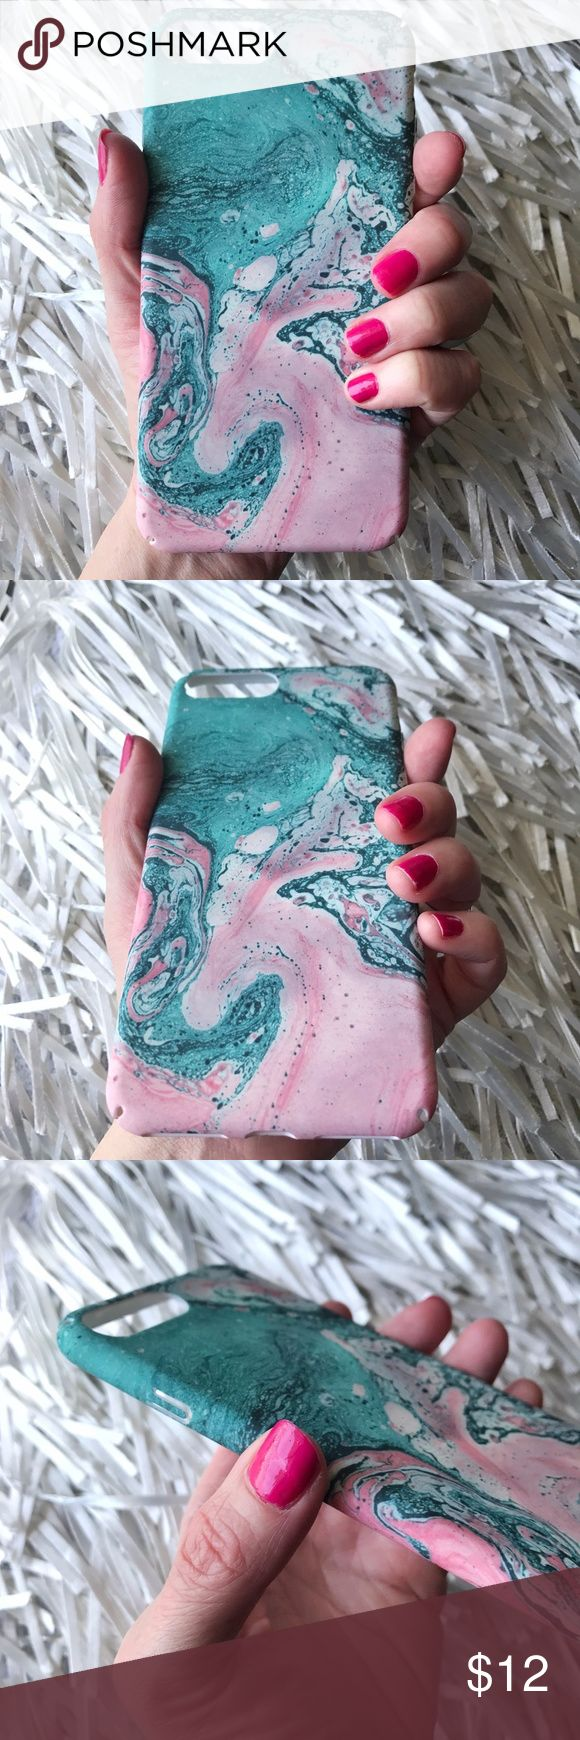 NEW iPhone 7/8 Plus Marble Stone Case Cover ▪️BRAND NEW , Fits iPhone 7 or iPhone 8 Plus Size   ▪️Tough Shock-Resistant Hard PC     ▪️Outer Case Has Lovely Velvet Texture     ▪️Same or Next Day Shipping ! Accessories Phone Cases